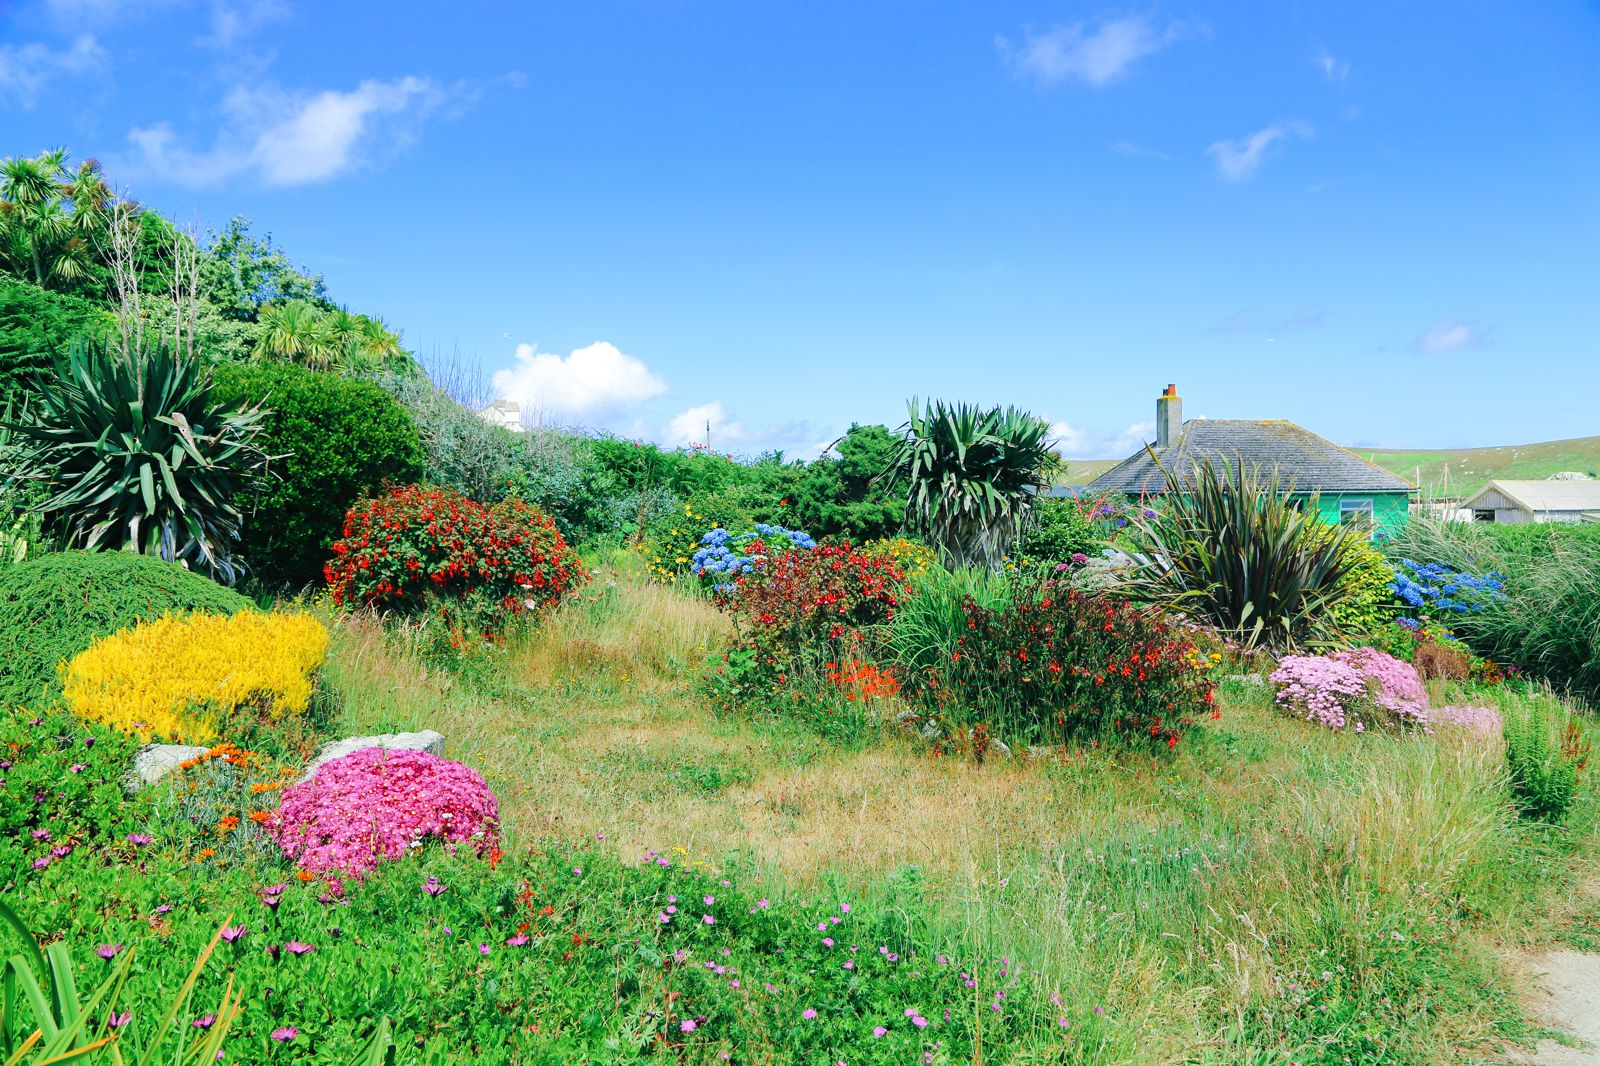 Kayaking in Bryher, Honesty Boxes and Tropical Island Hues... In Bryher Island, Isles of Scilly, UK (45)